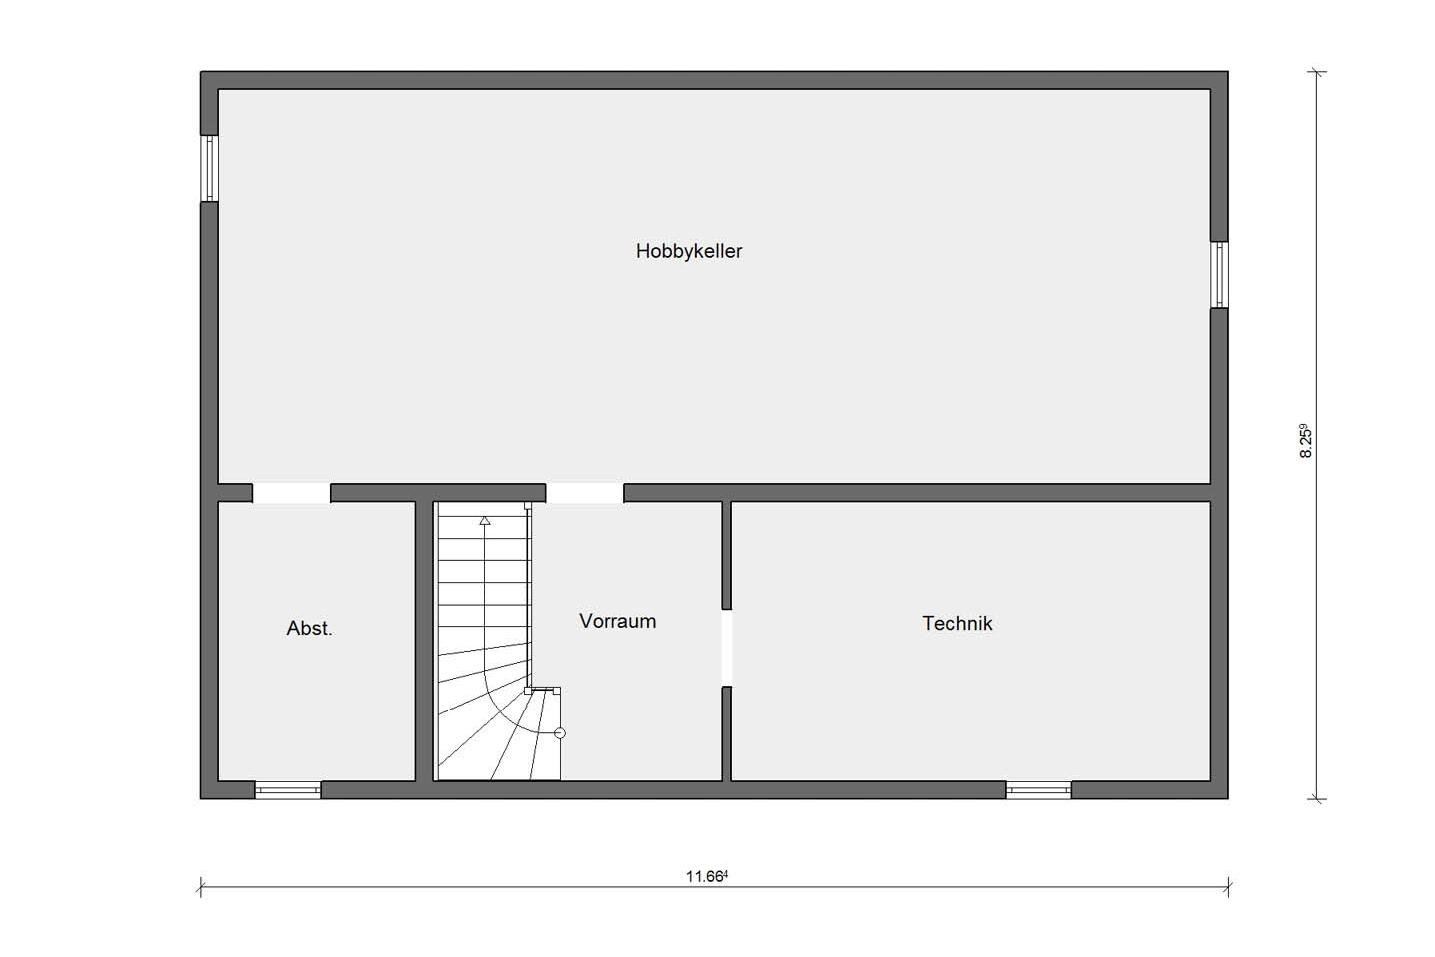 Basement floor plan prefabricated house with 3 children's rooms E 20-165.6